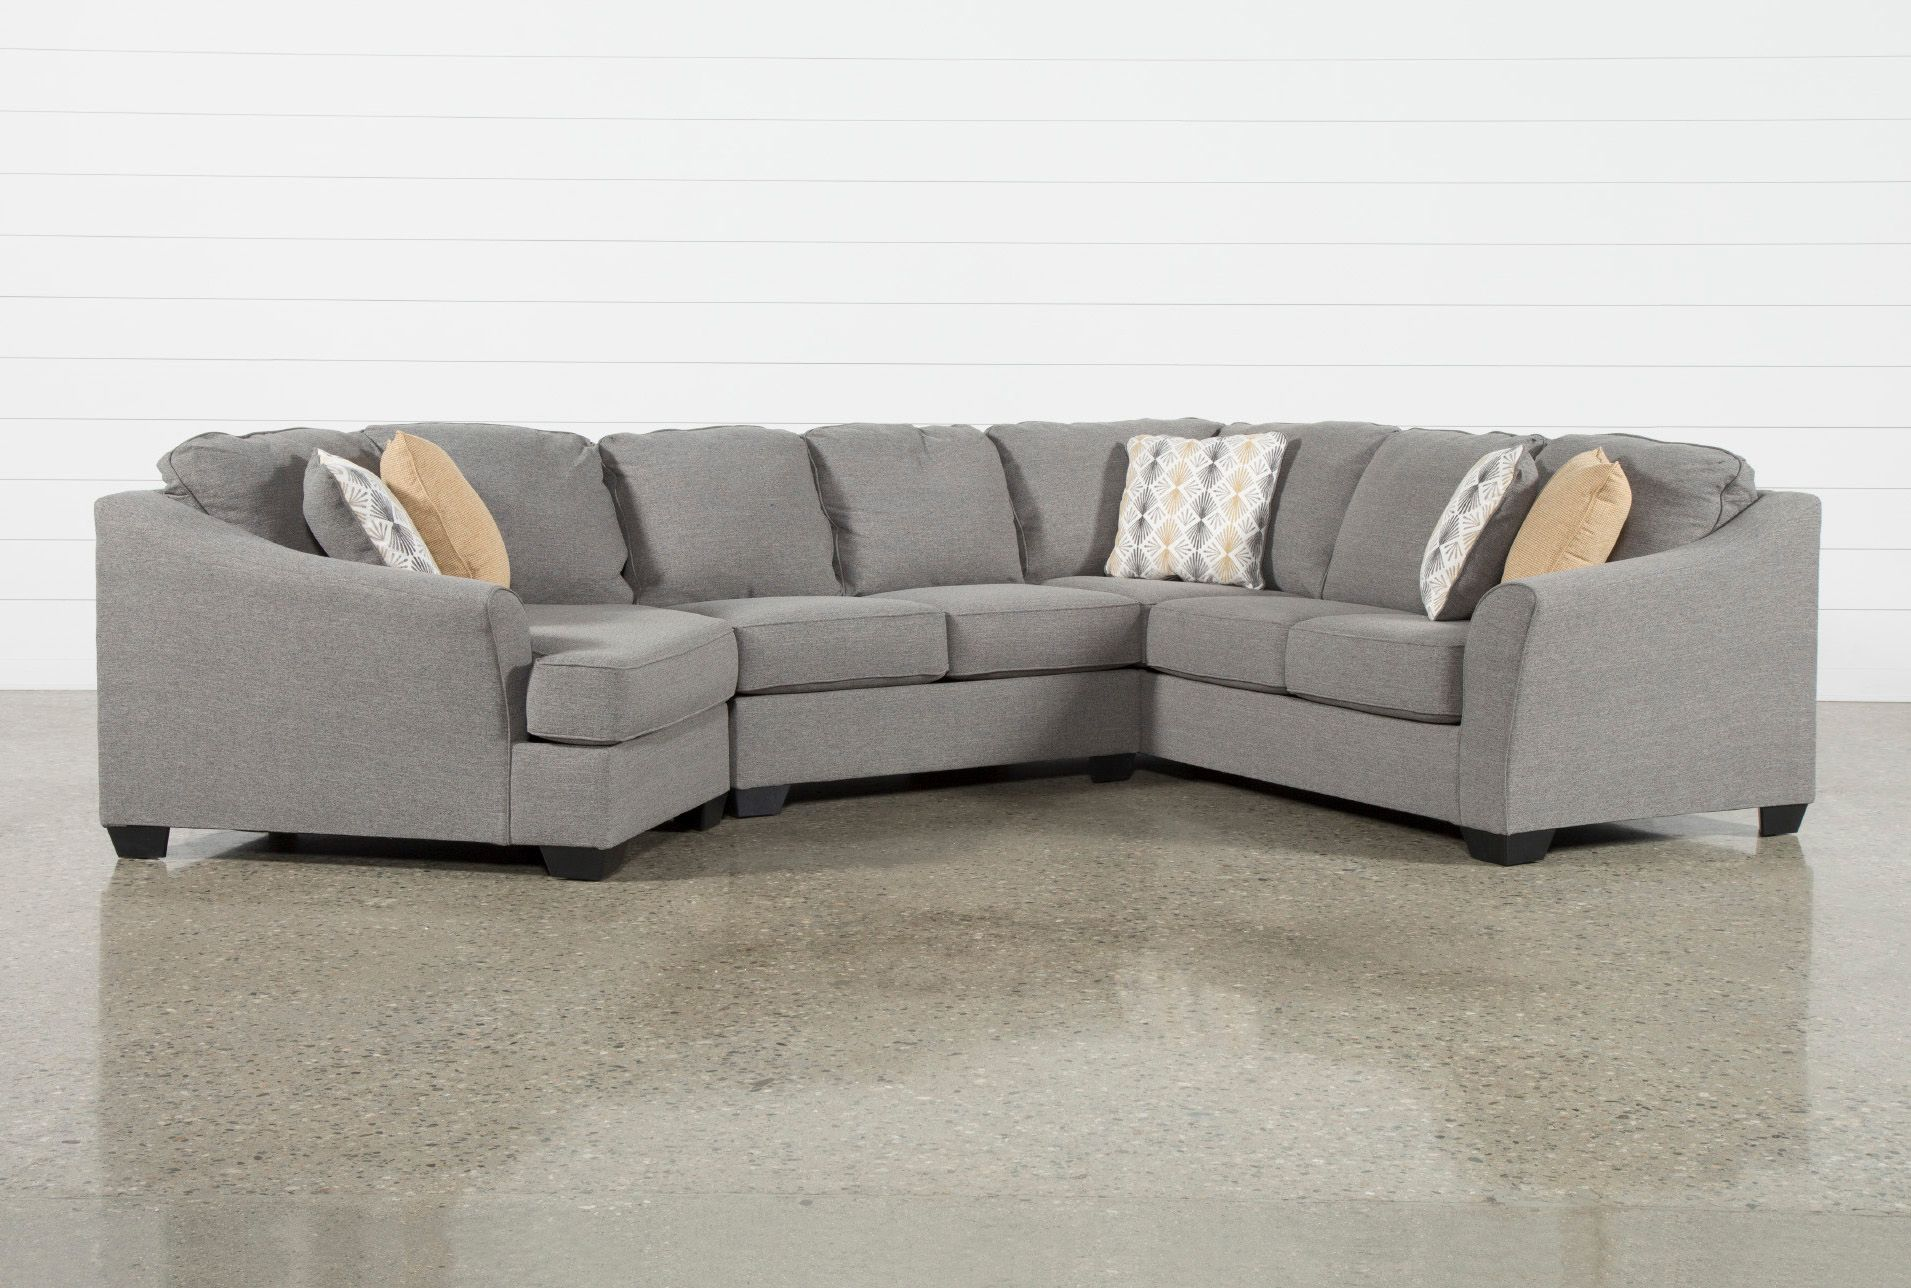 Best Ashley Fenton 3 Piece Sectional Sofa With Left Arm Facing 400 x 300